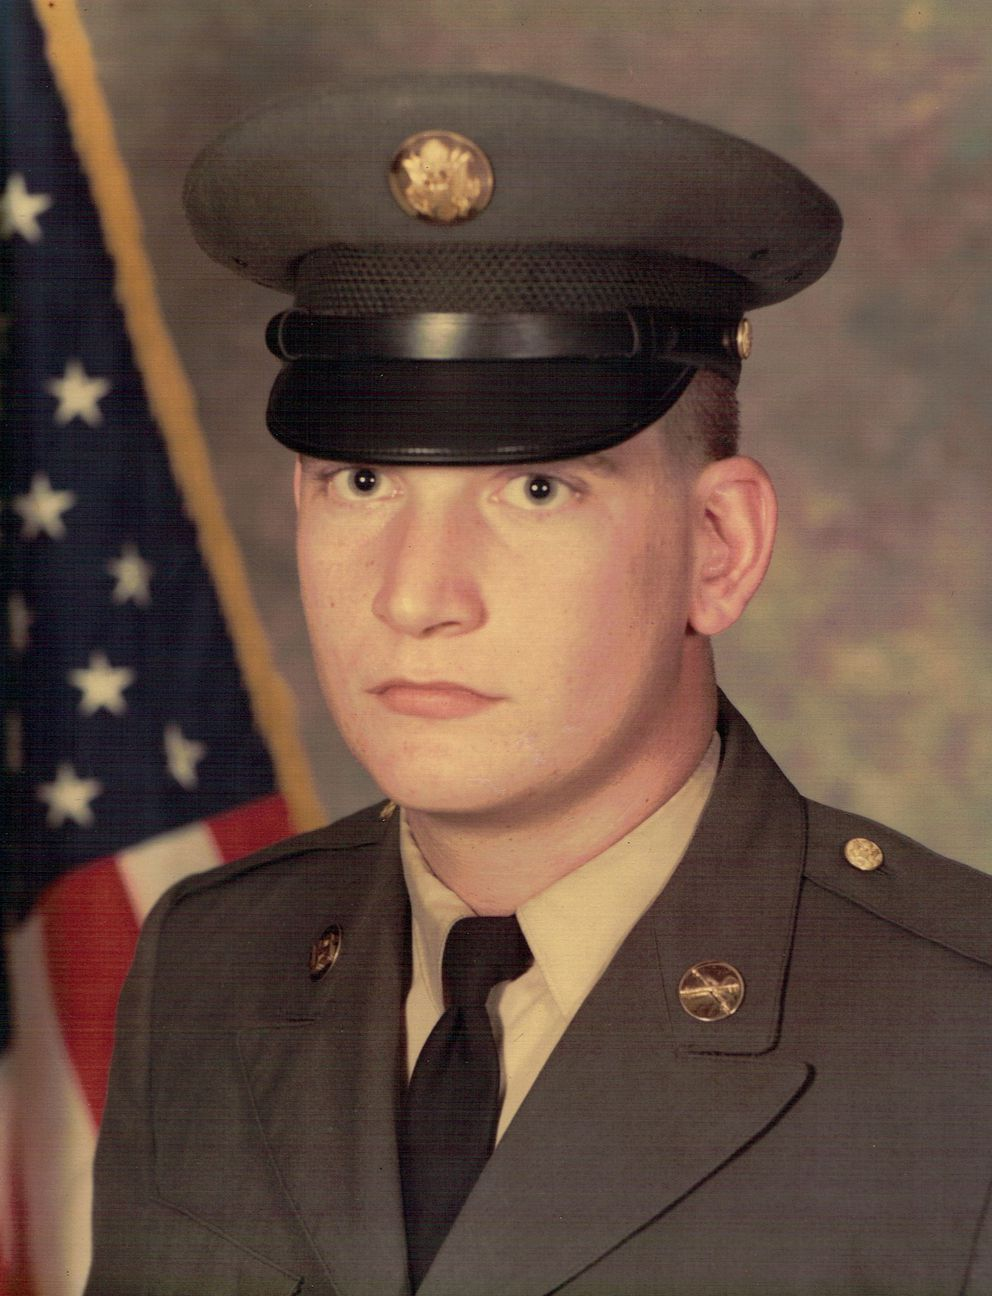 Doug Cleaves served in the U.S. Army from 1977 to 1980, and was a member of the Army National Guard. (Photo courtesy of the Cleaves family)